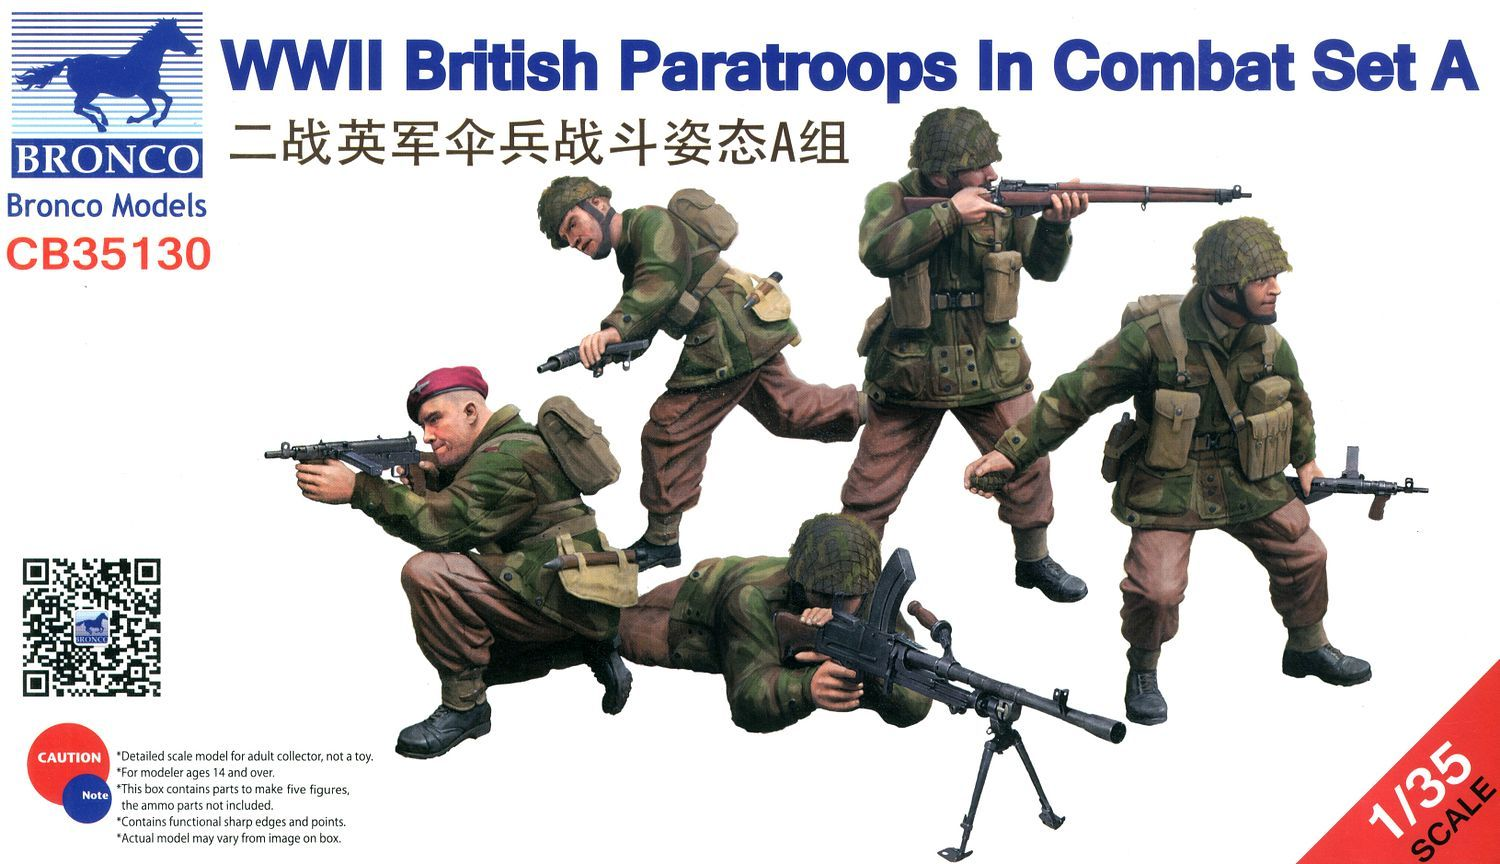 Bronco Models 1/35 WWII British Paratroops In Combat Set A